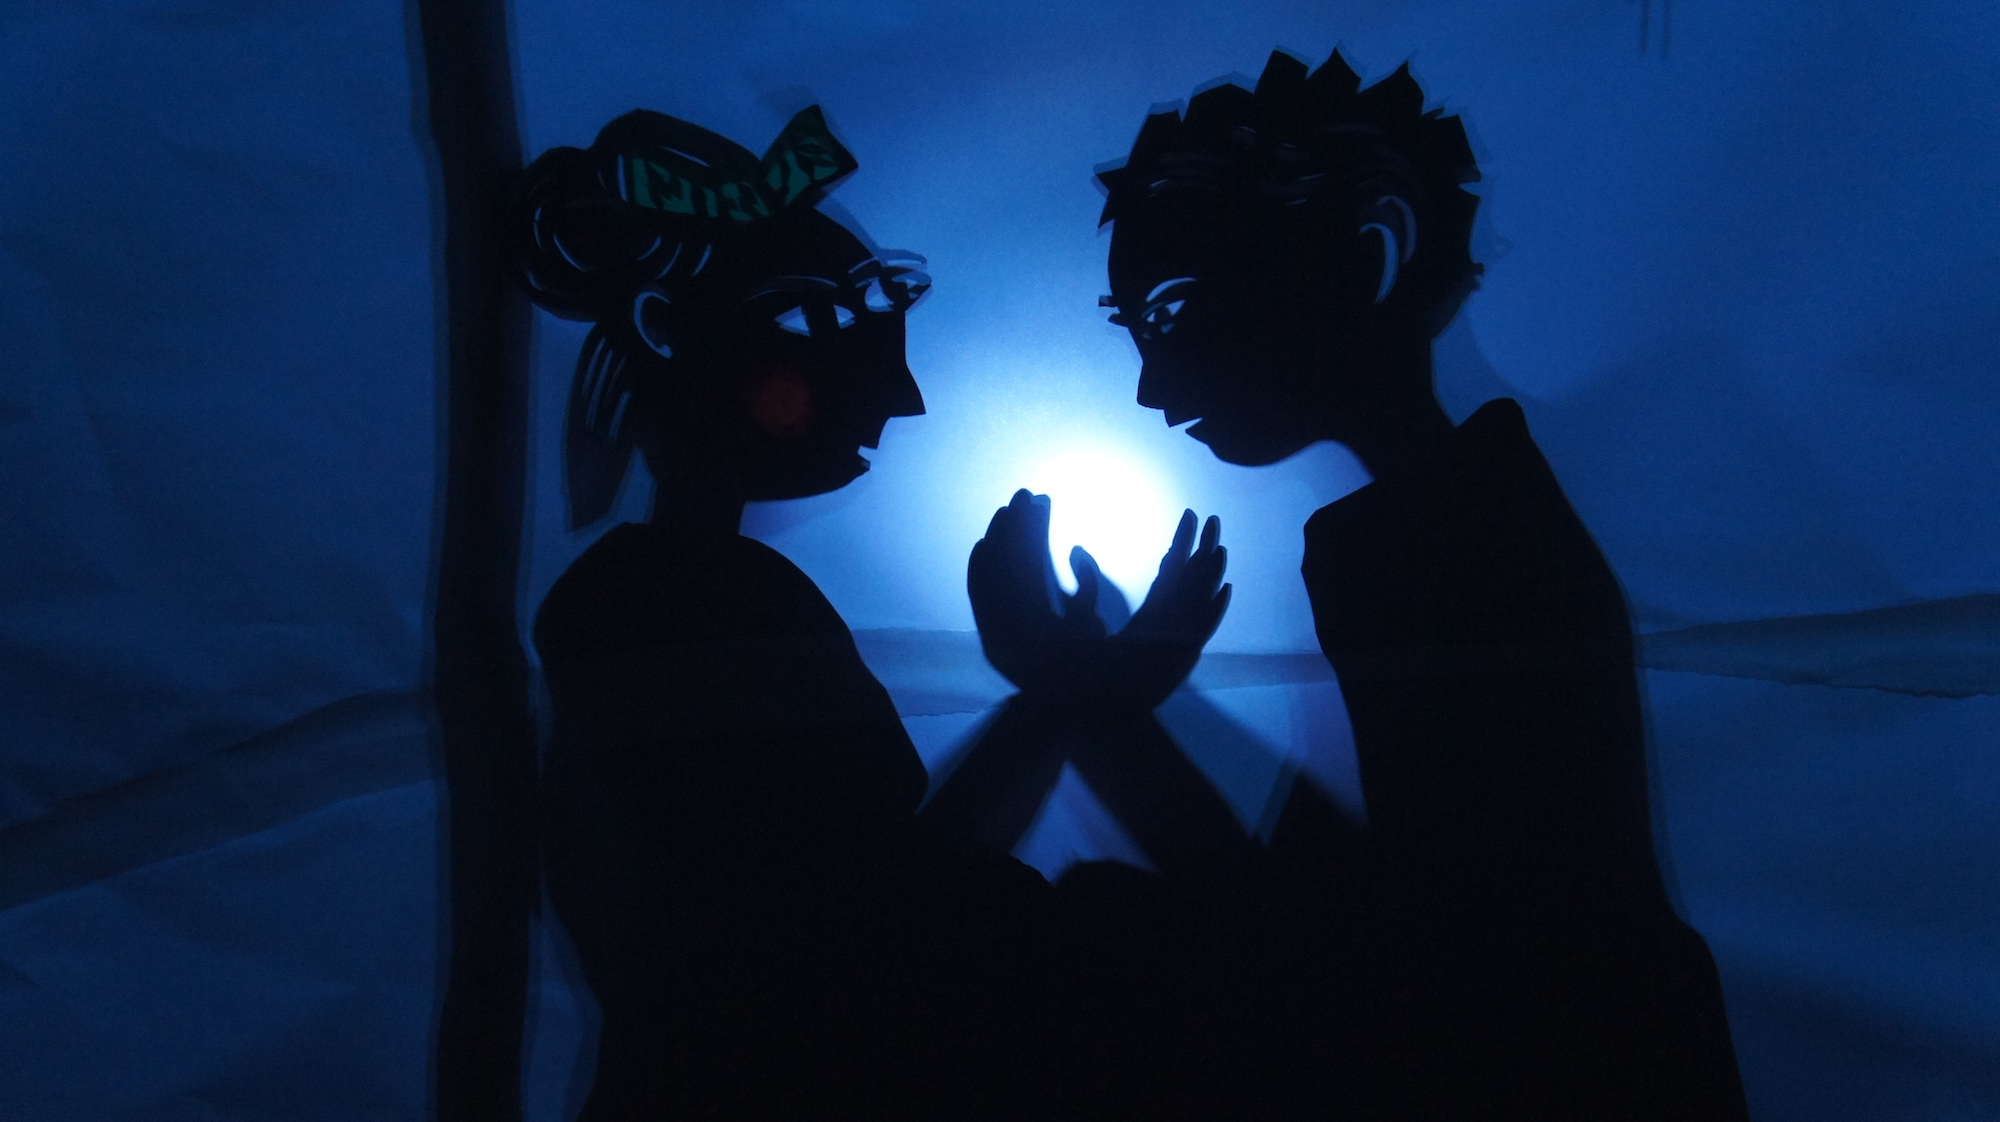 Two shadow puppets are in front of a blue background with a light in the center. Two hands are cradling the light, and the eyes of both shadow puppets are looking towards it.